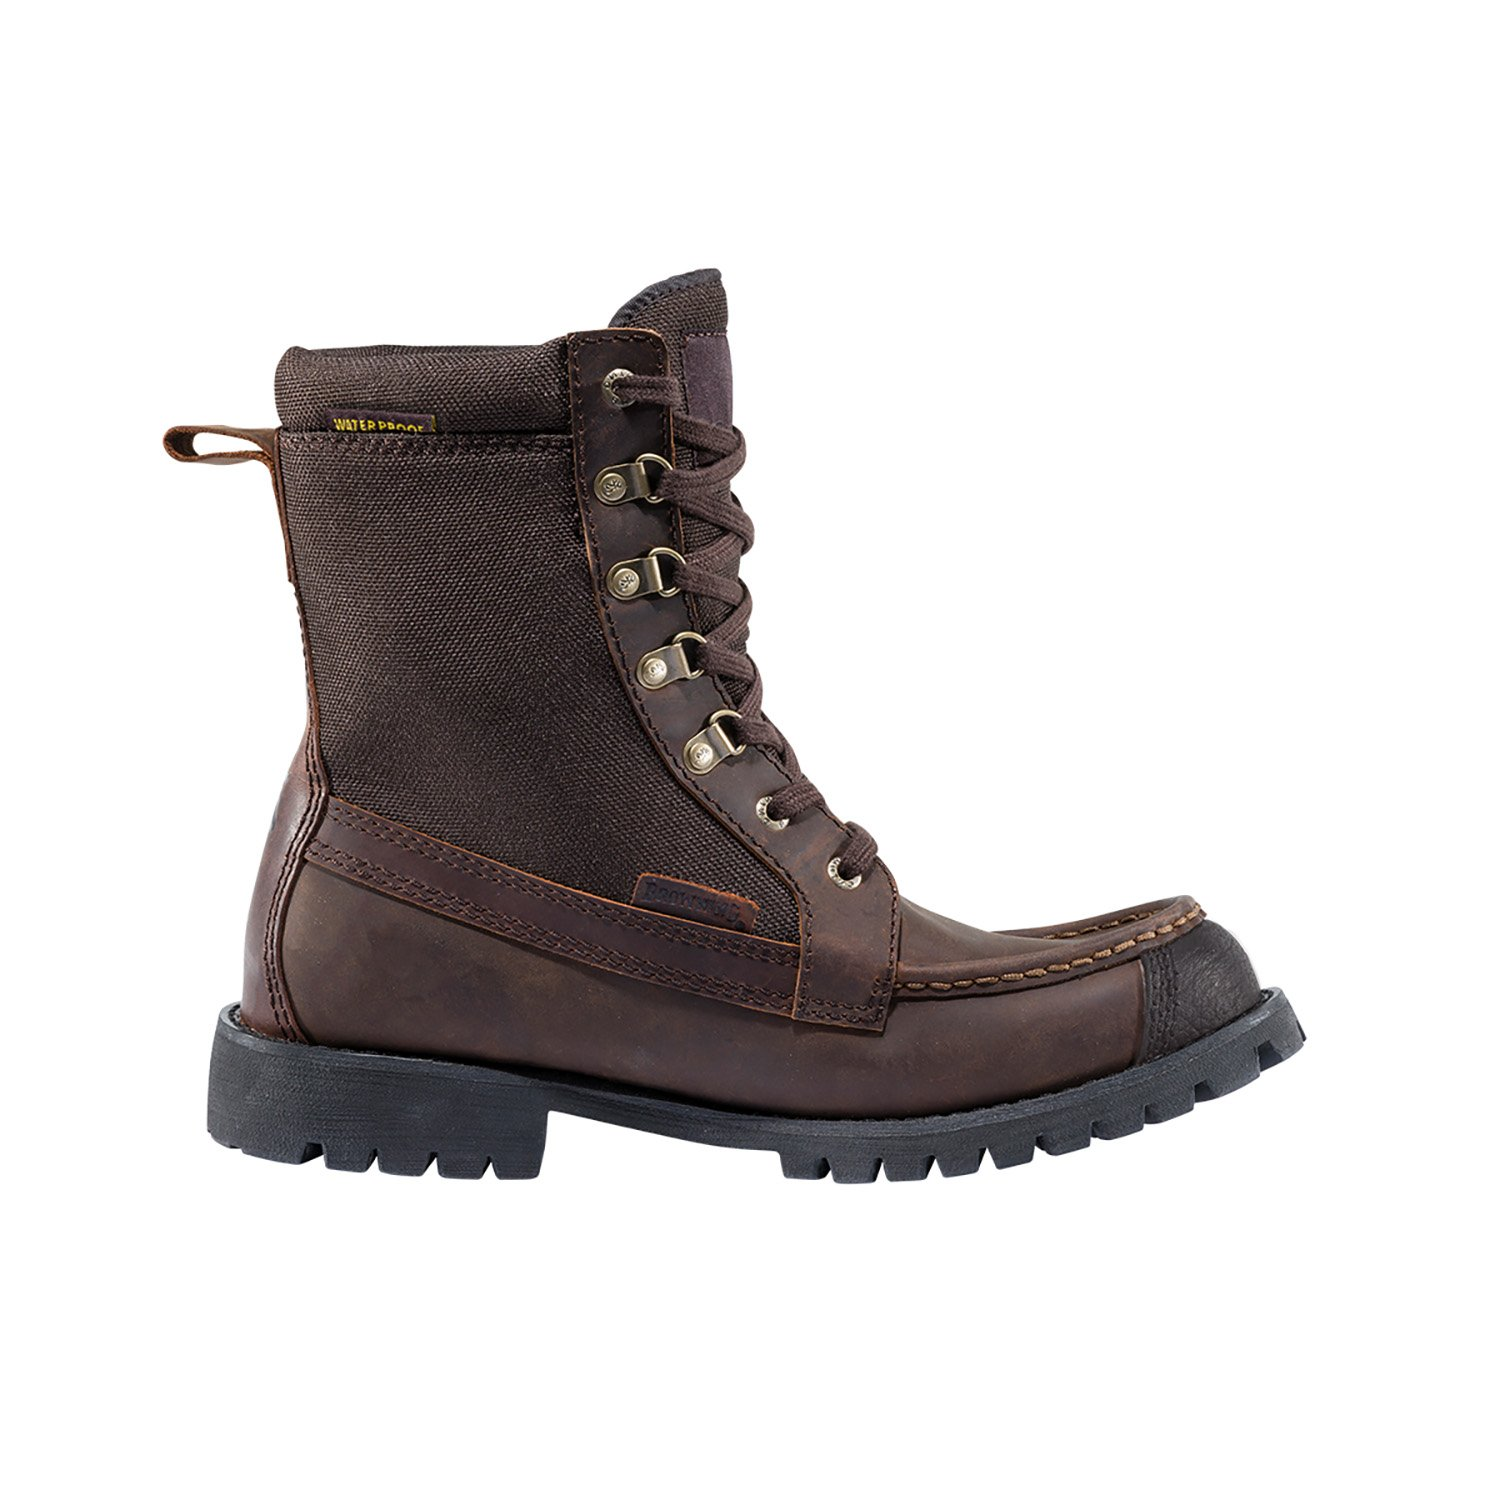 Browning Men's Featherweight Upland Boot, Bracken, Size 9.5 by Browning (Image #4)